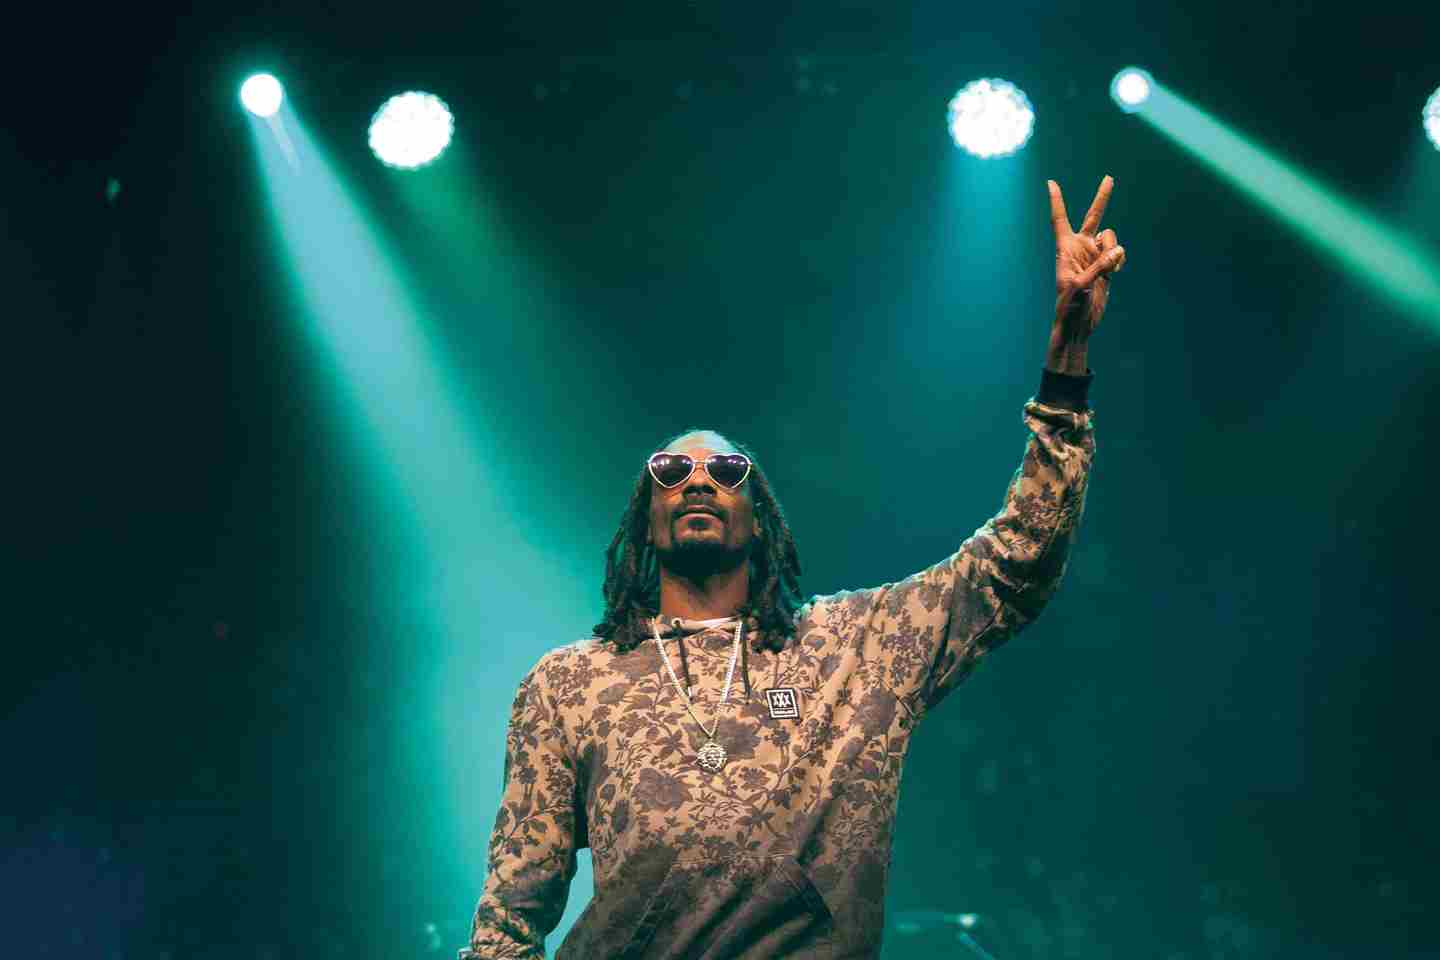 boardmasters-snoop-dog-copyright-Dan-Landsburgh.jpg